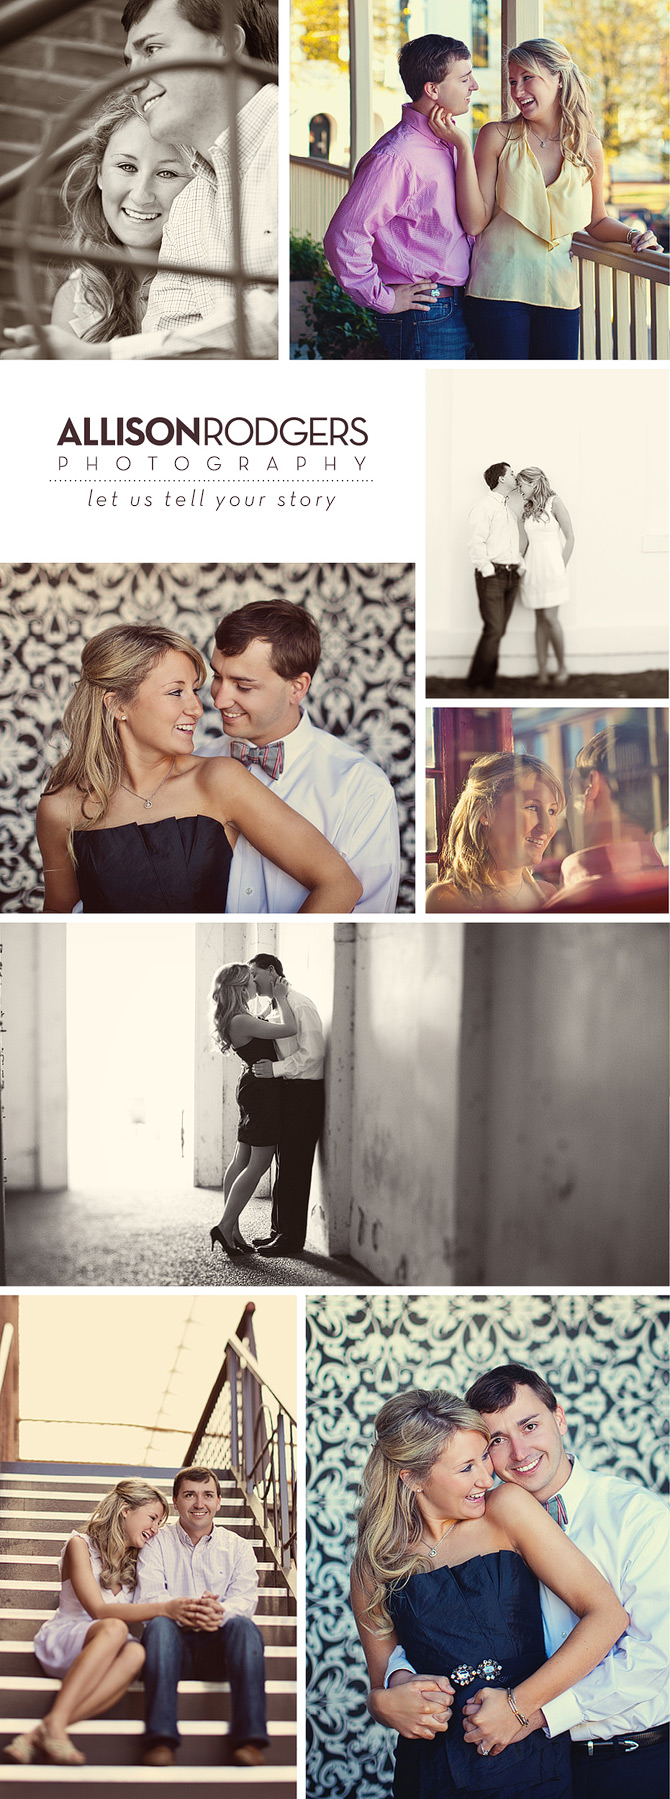 Allison-rodgers-memphis-engagement-oxford-wedding-photography-hall